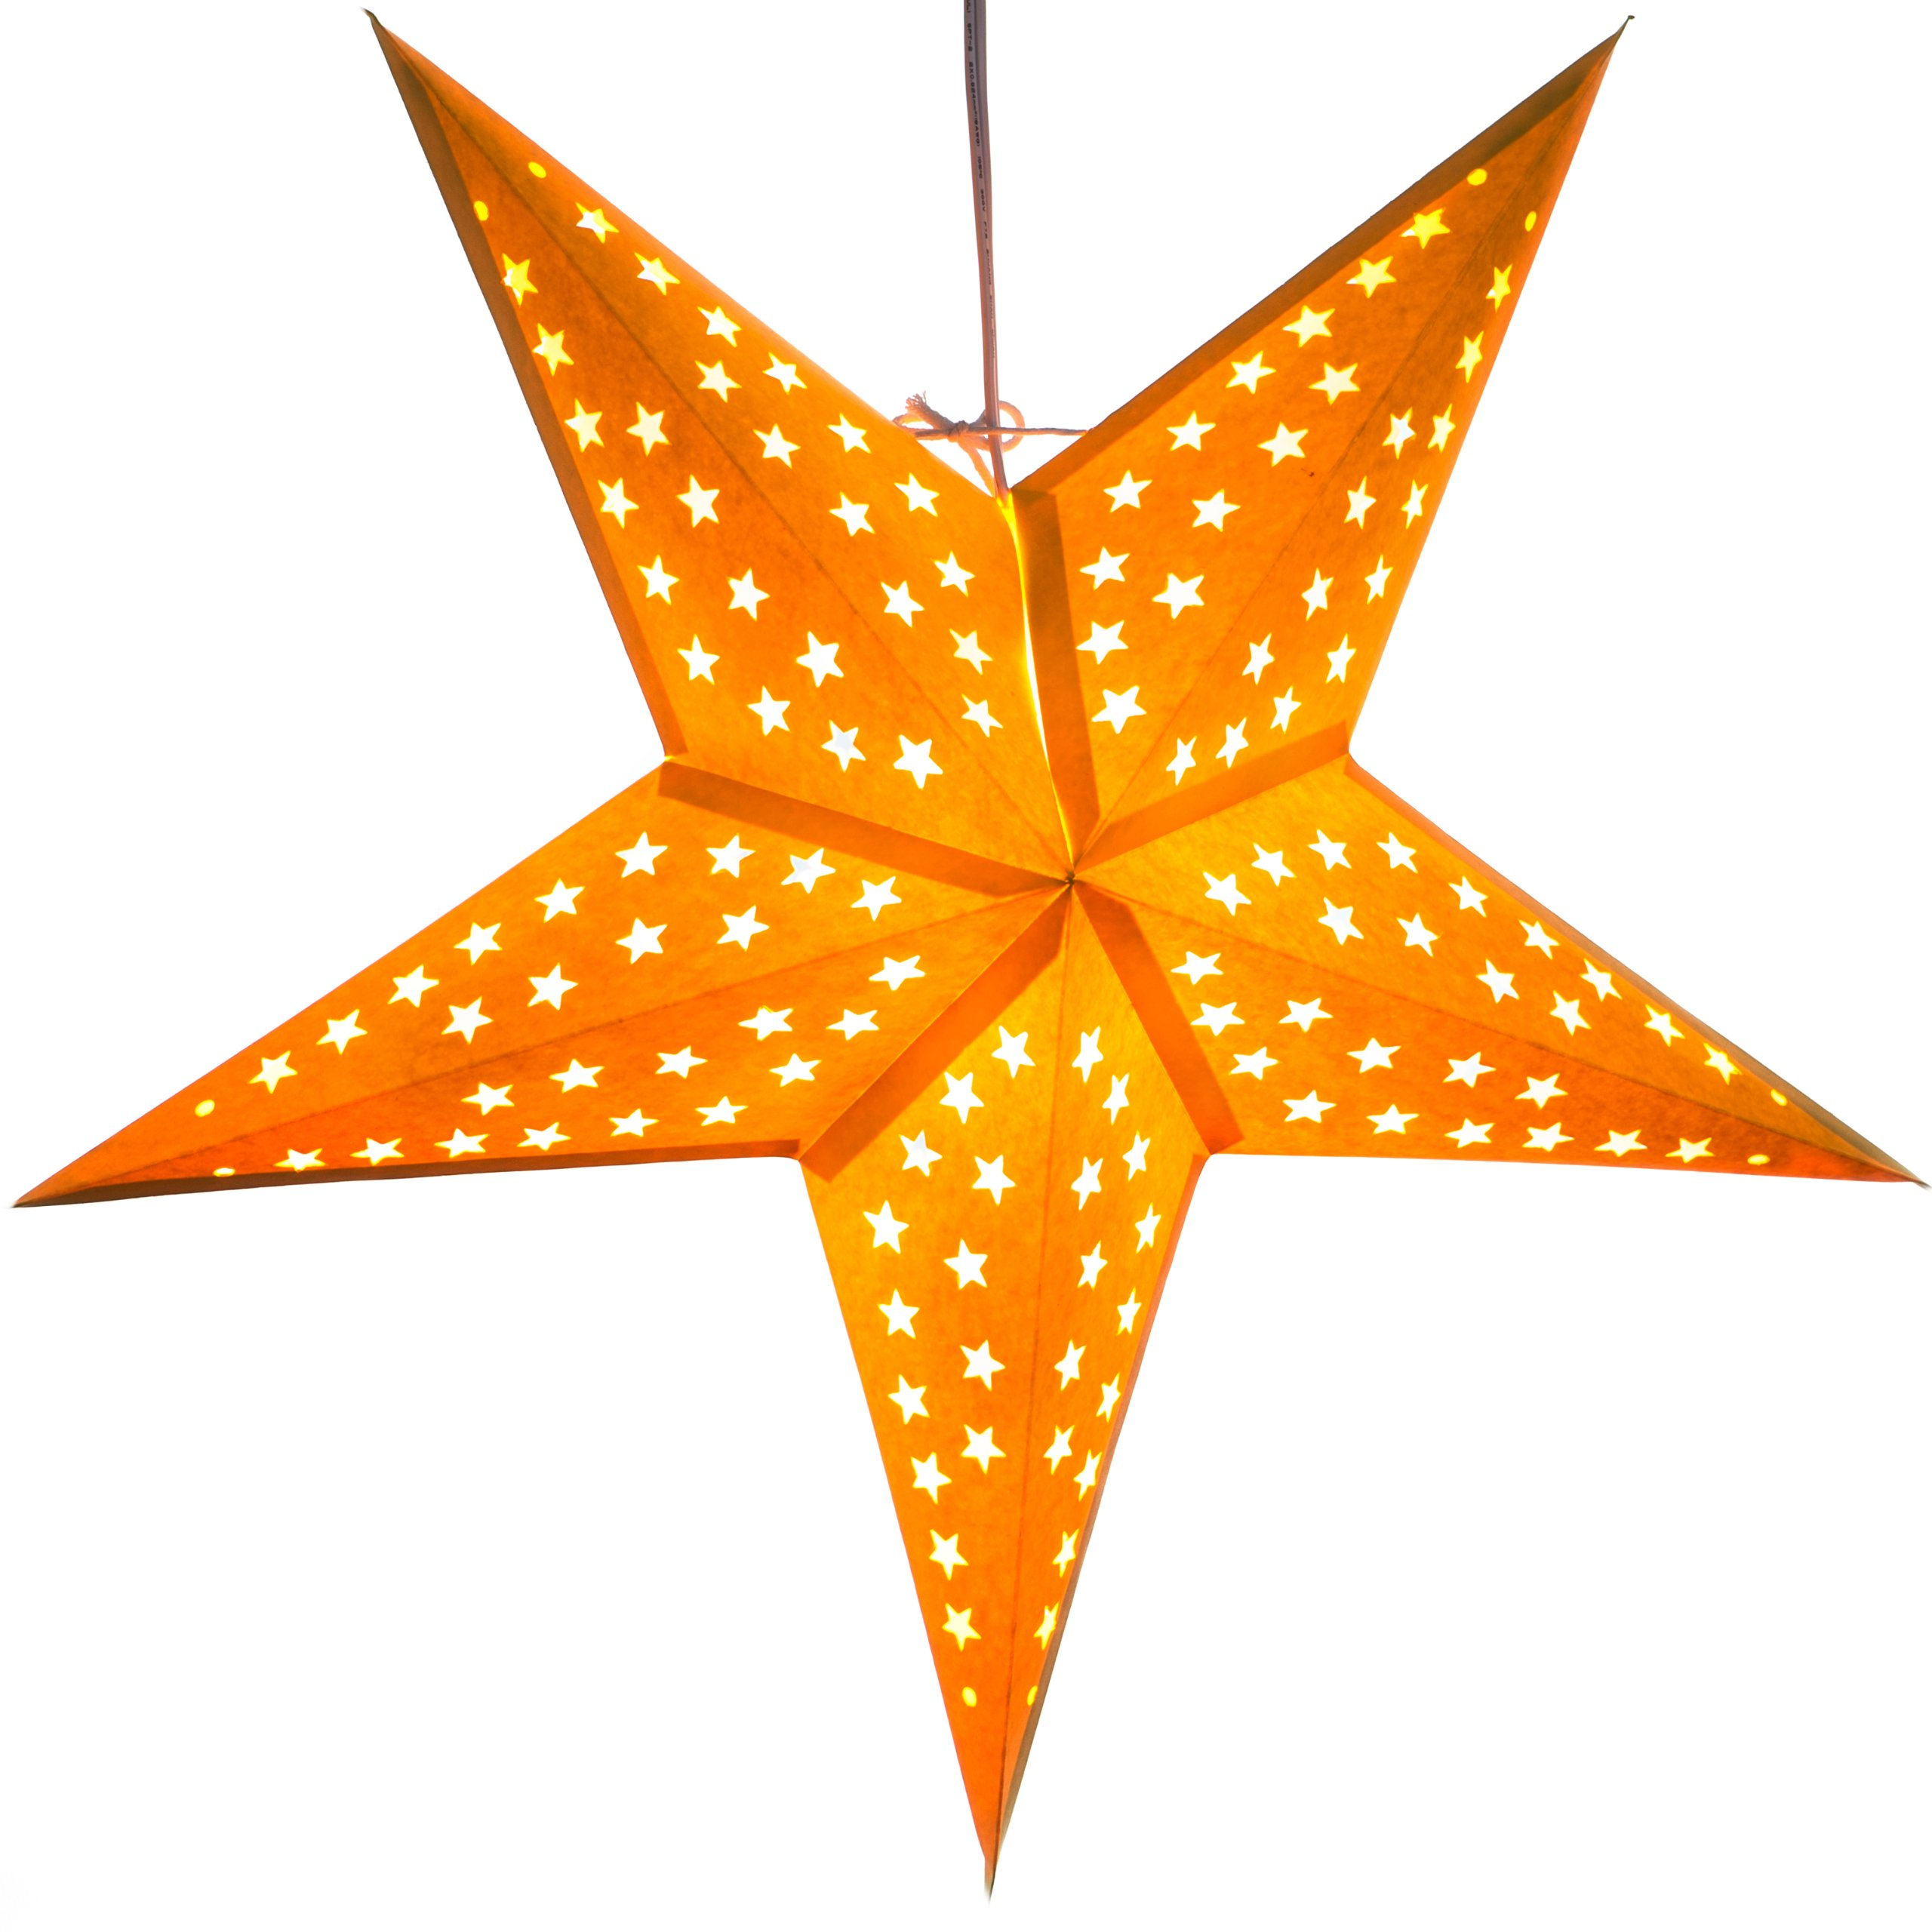 Paper Star Light Lamp Lantern with 12 Foot Power Cord Included (Yellow)